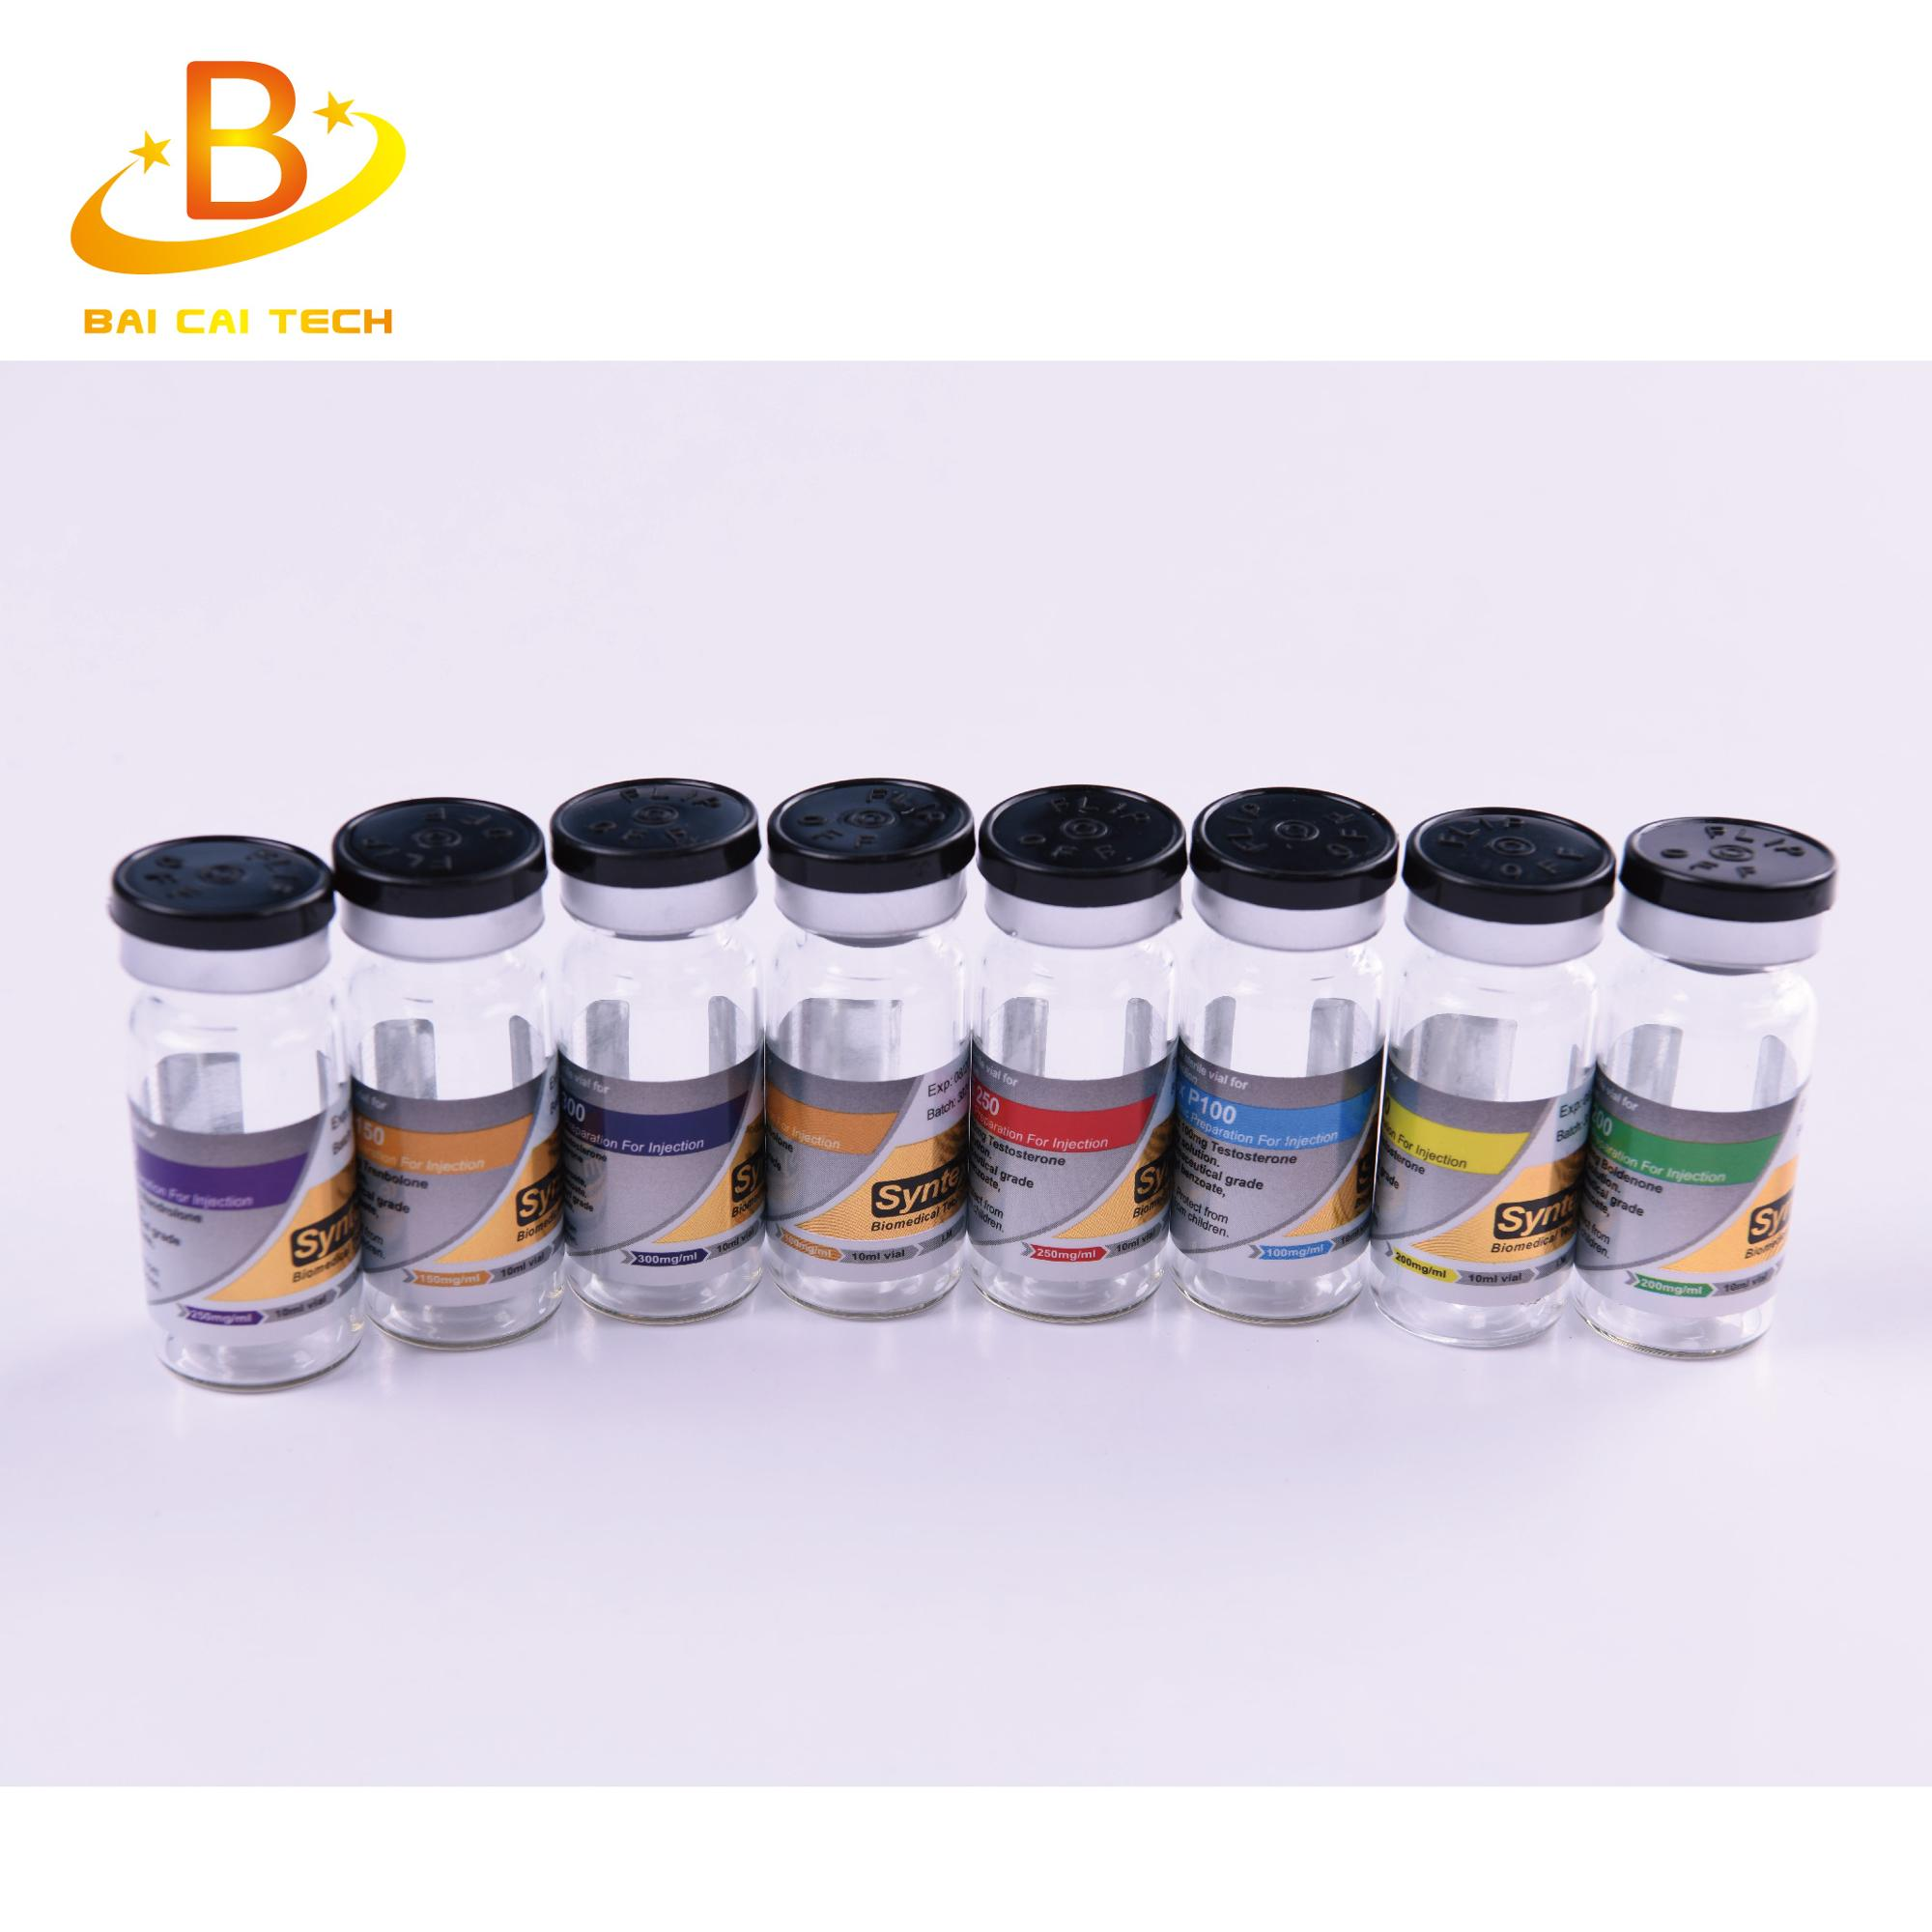 Professional custom antifake silver gold foil laser hologram 1ml 3ml 5ml 20ml 30ml 2ml 10ml vial labels